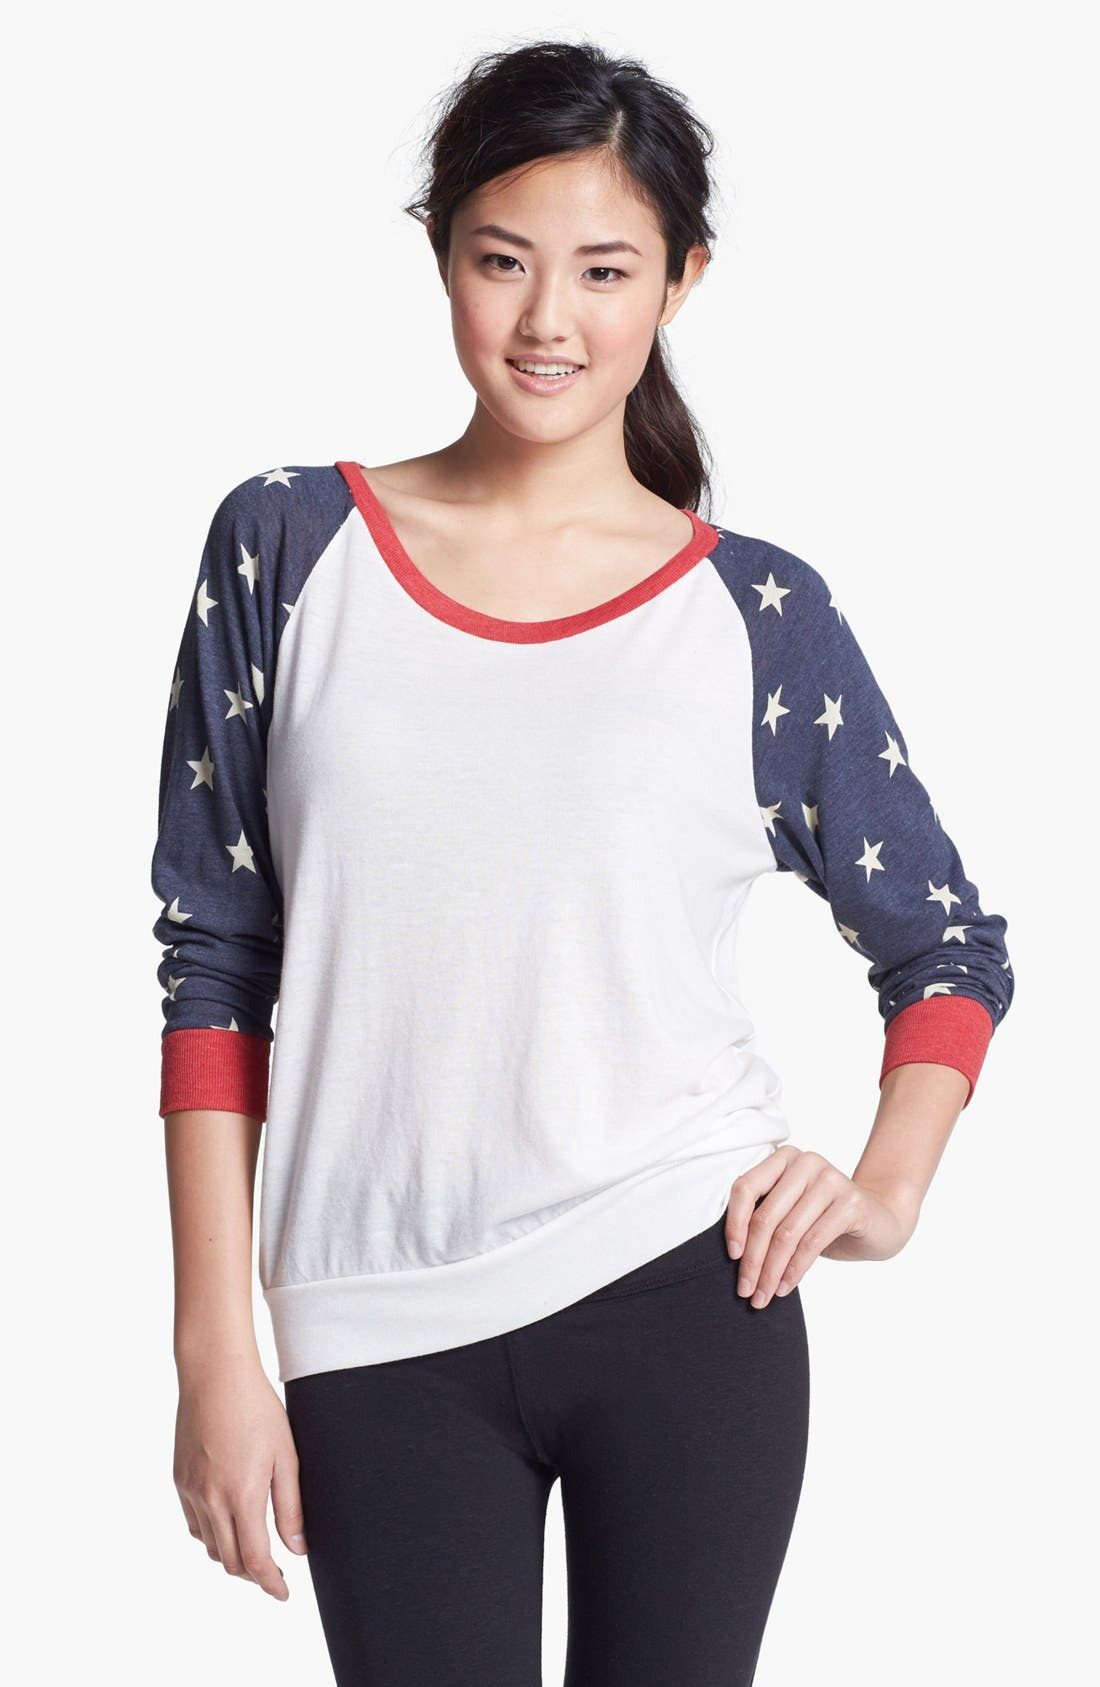 Alternate Image 1 Selected - Alternative Print Slouchy Pullover Top